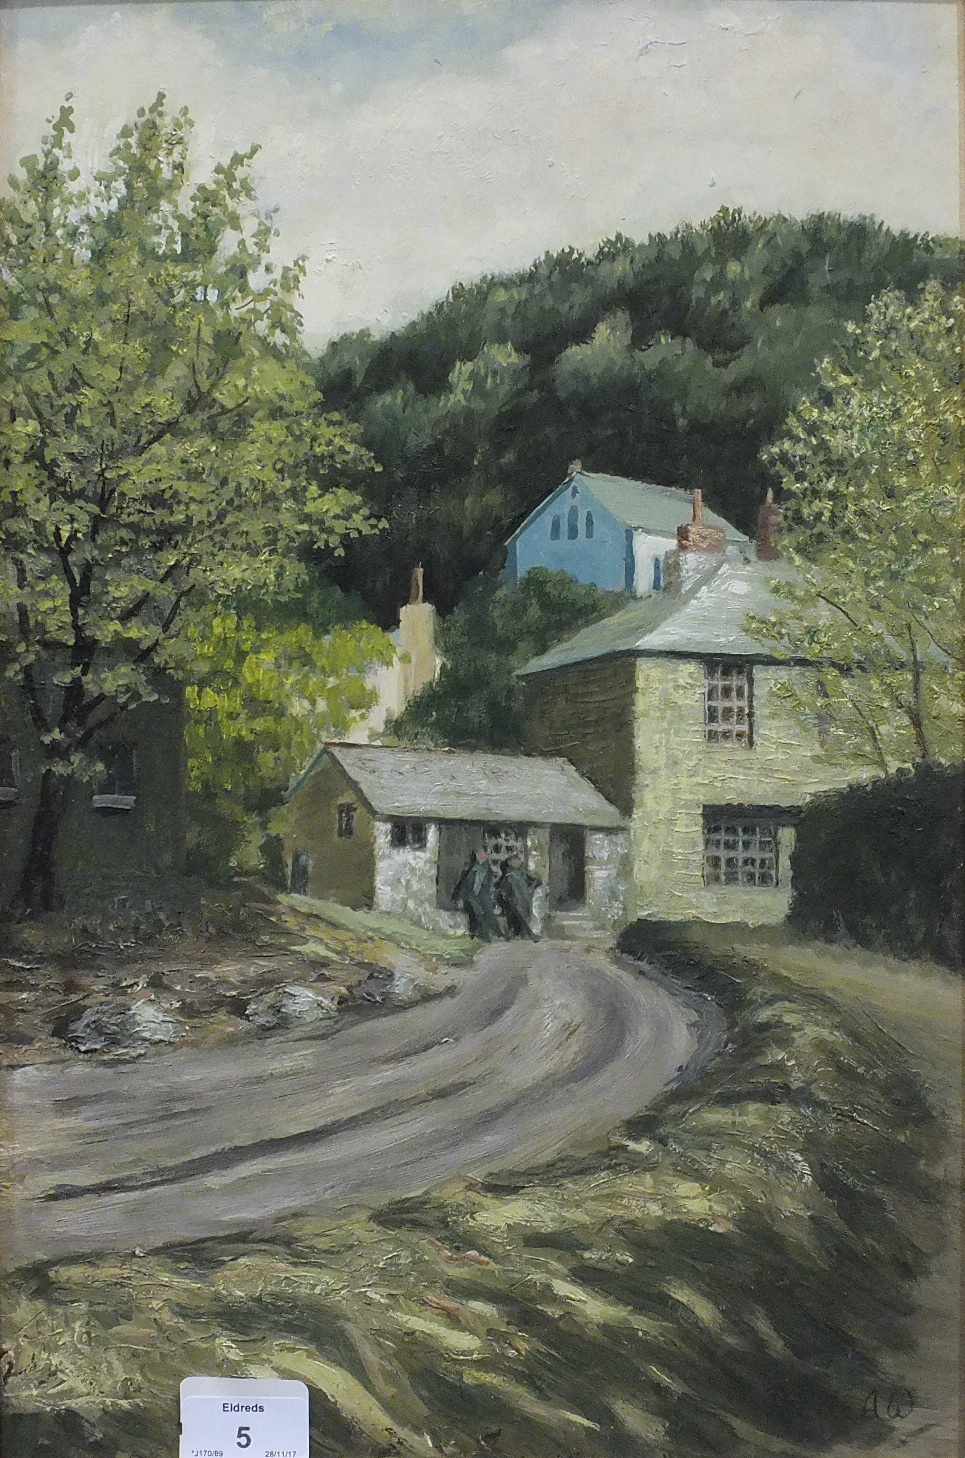 •RIVER MEAVY Signed oil on board, 43.5 x 31cm and VIEW OF MORWELLHAM, 44.5 x 29cm, both titled - Image 4 of 4